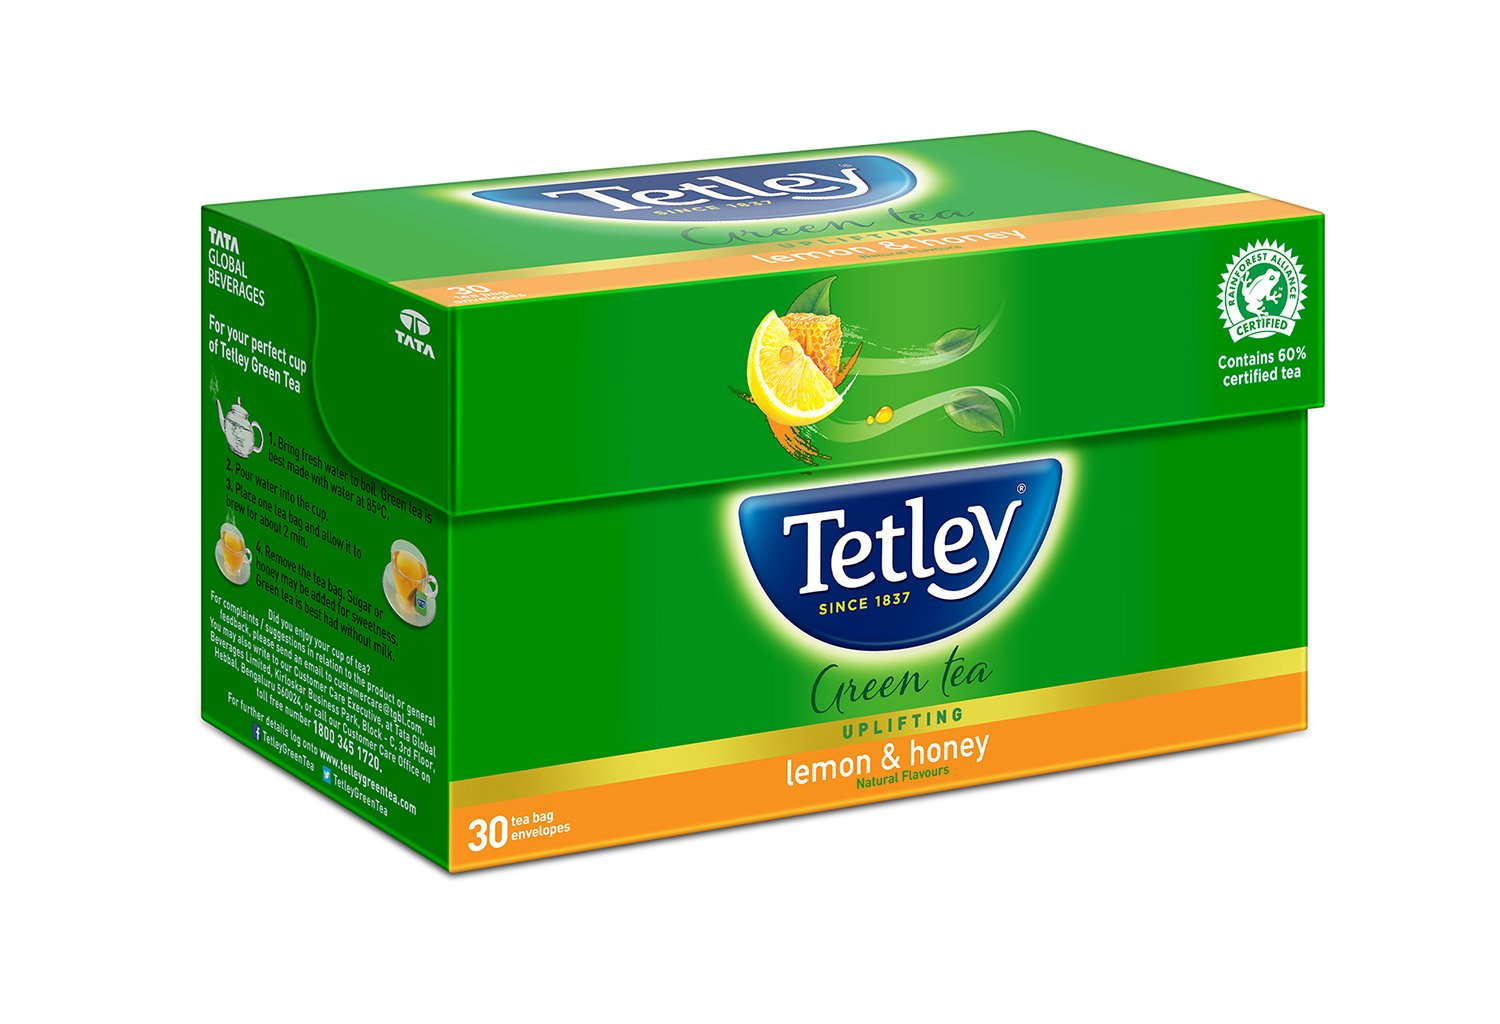 Tetley Green Tea, Lemon & Honey, 30 Tea Bags: Amazon.in: Grocery & Gourmet Foods